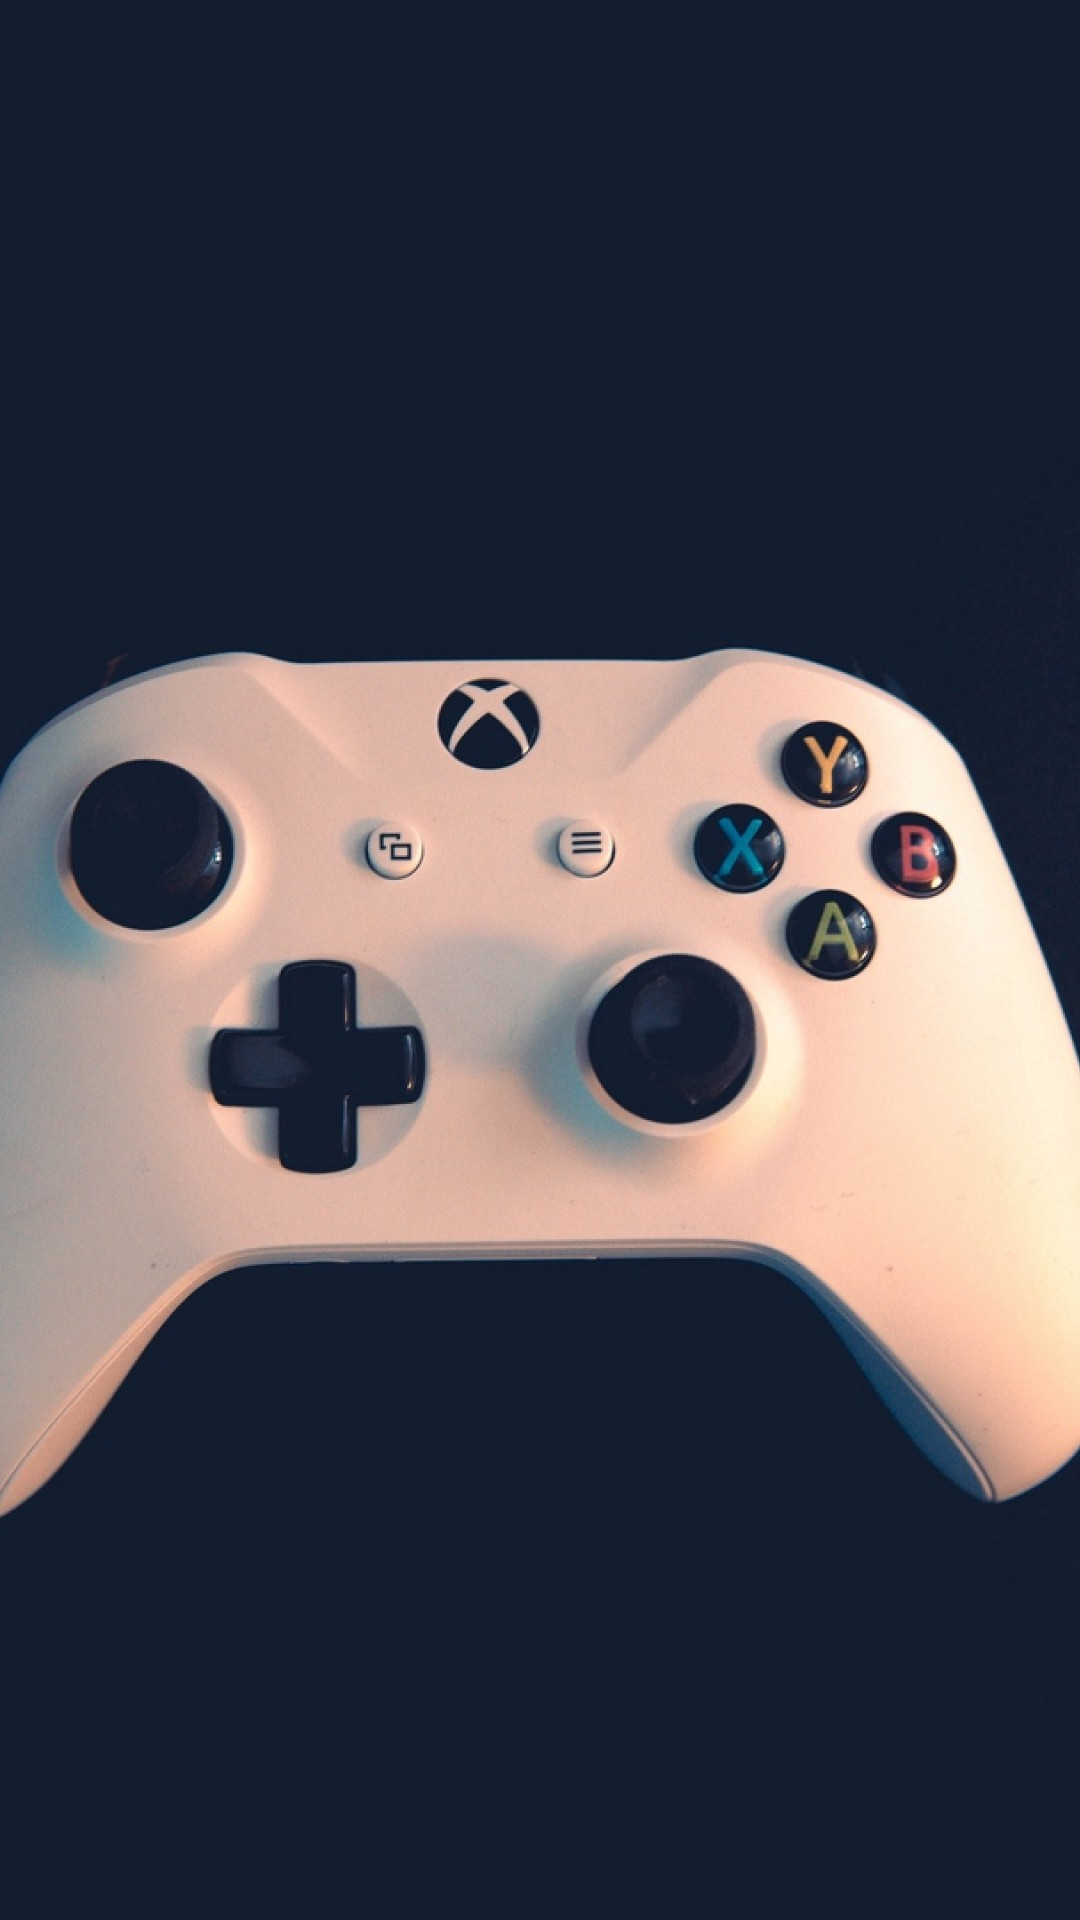 Game controller HD Wallpaper